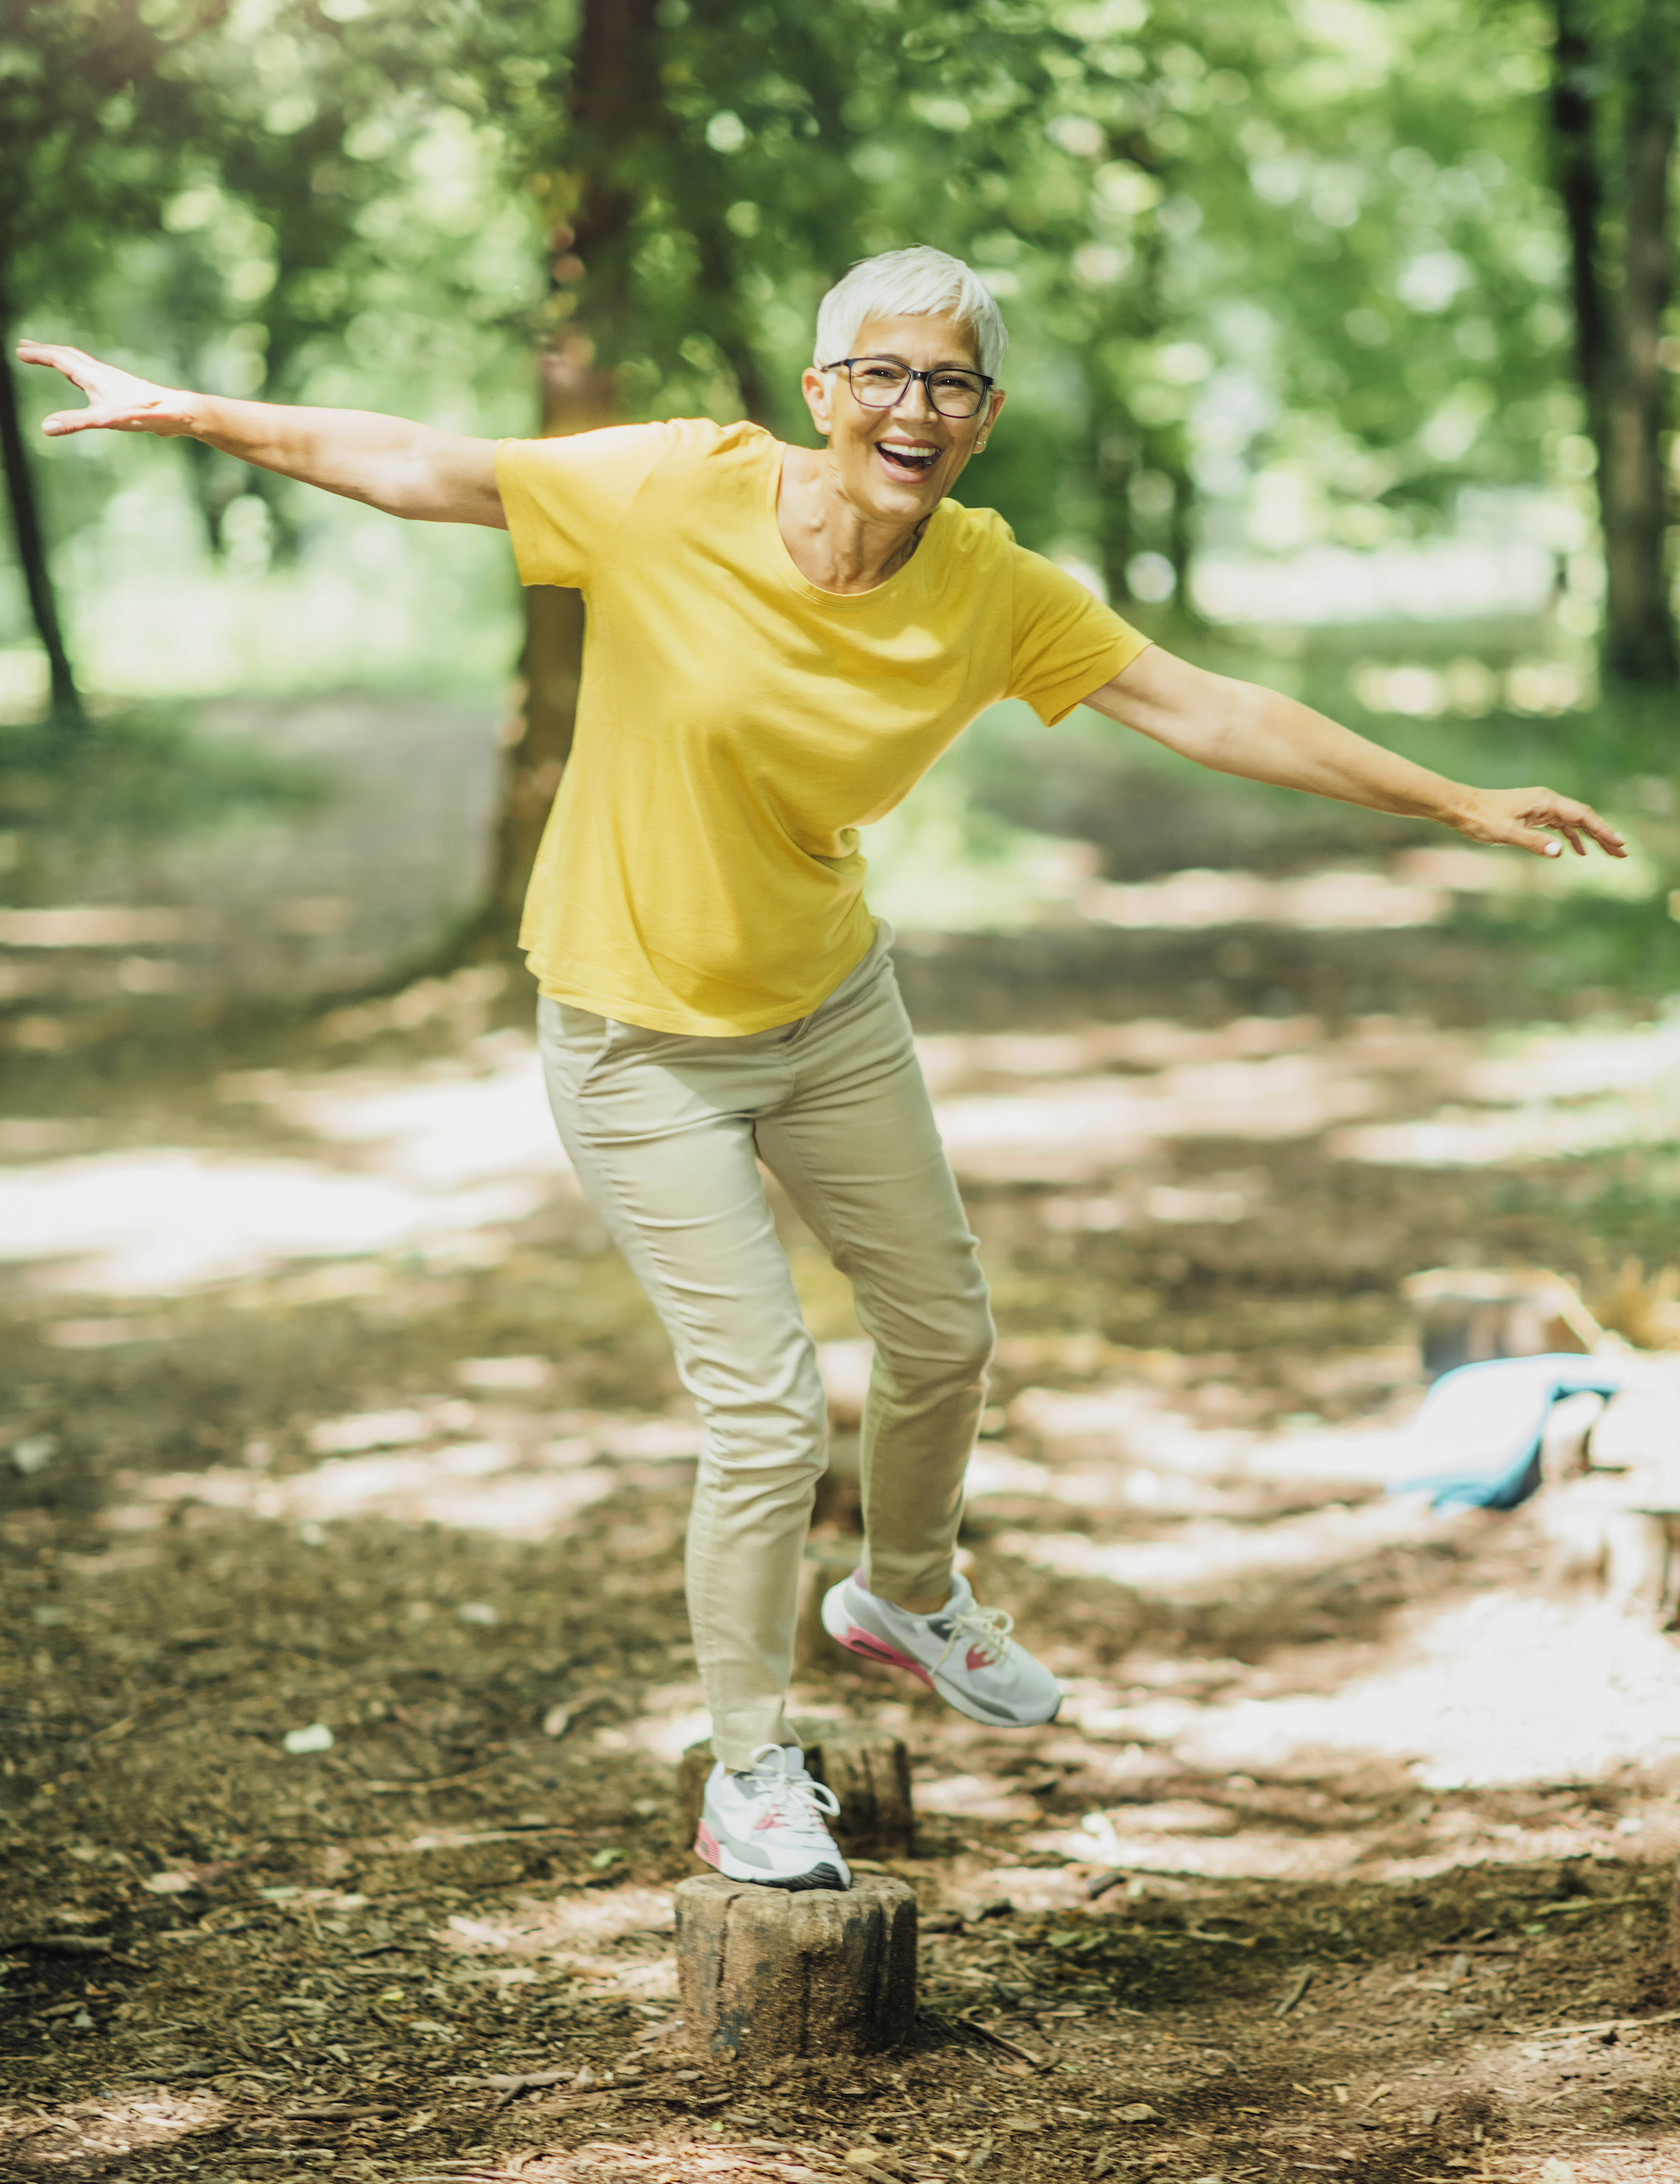 Happy and fit mid-aged woman balancing on a tree stomp in a sunny forest. Wearing a yellow shirt and beige pants.